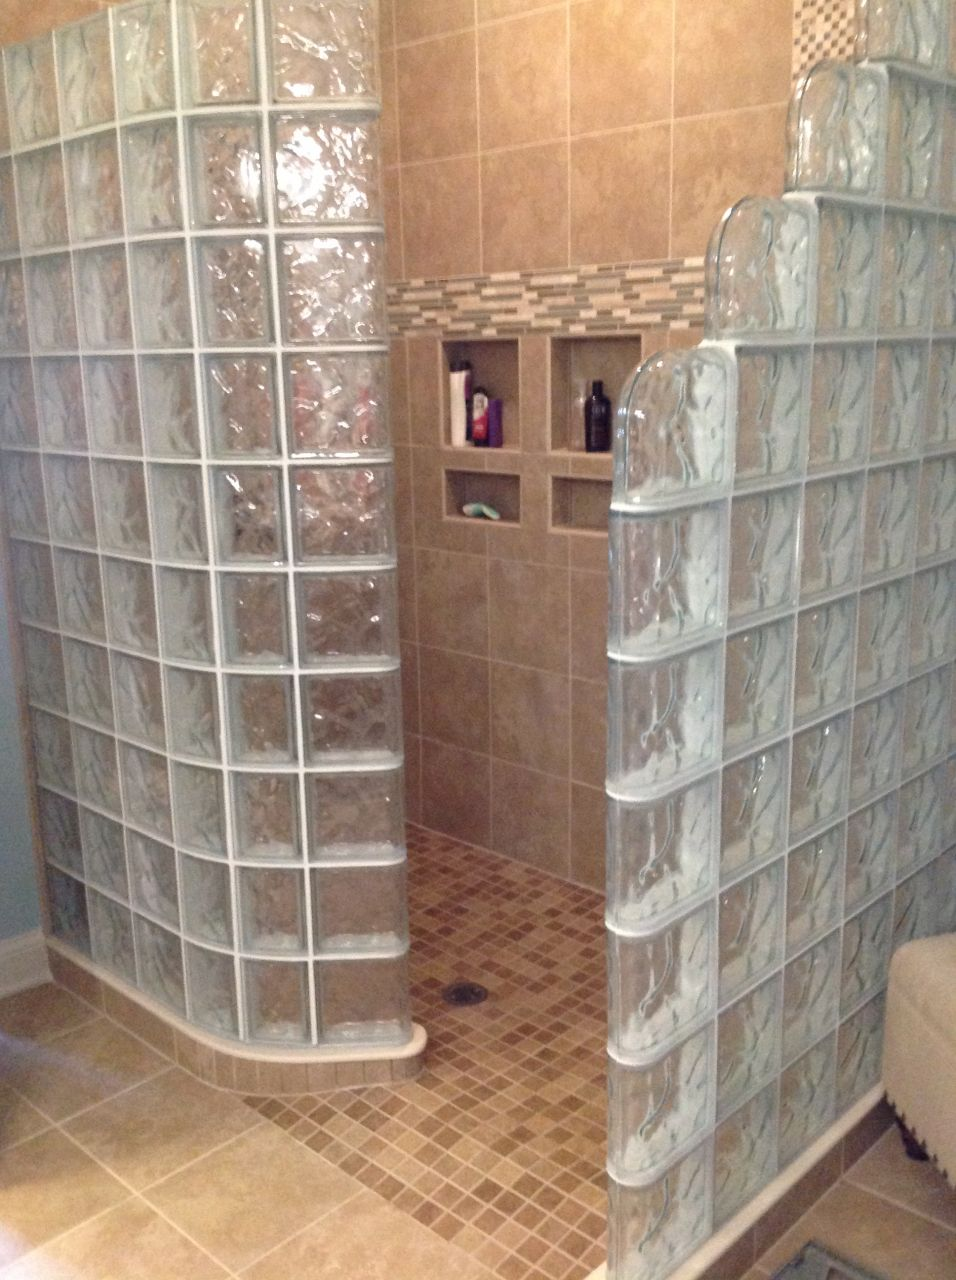 Barrier free ready for tile shower pan with a glass block enclosure